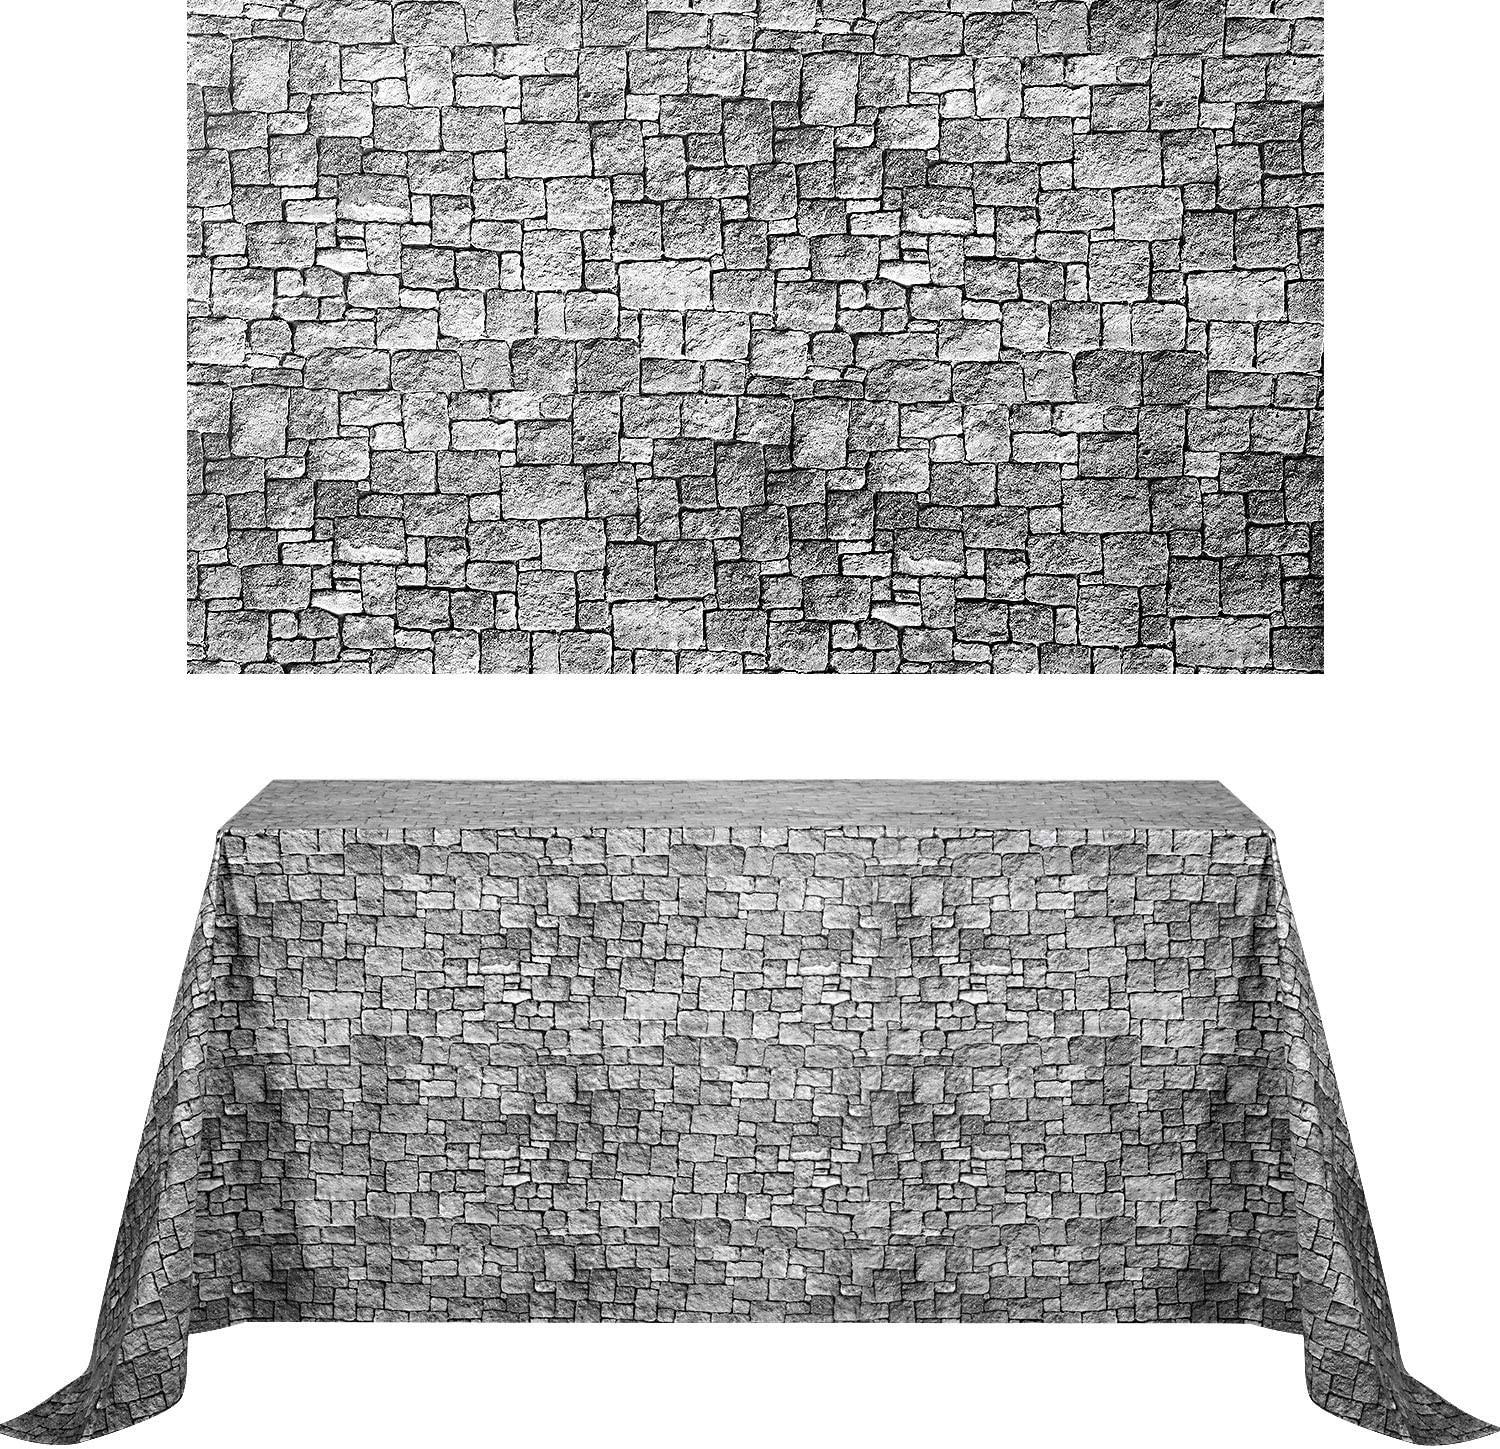 Chuangdi 2 Sheets 4.5 x 9 Feet Brick Wall Backdrop Stone Tablecloth Photo Brick Decal Wallpaper for Winter/Christmas Party (Grey Brick)